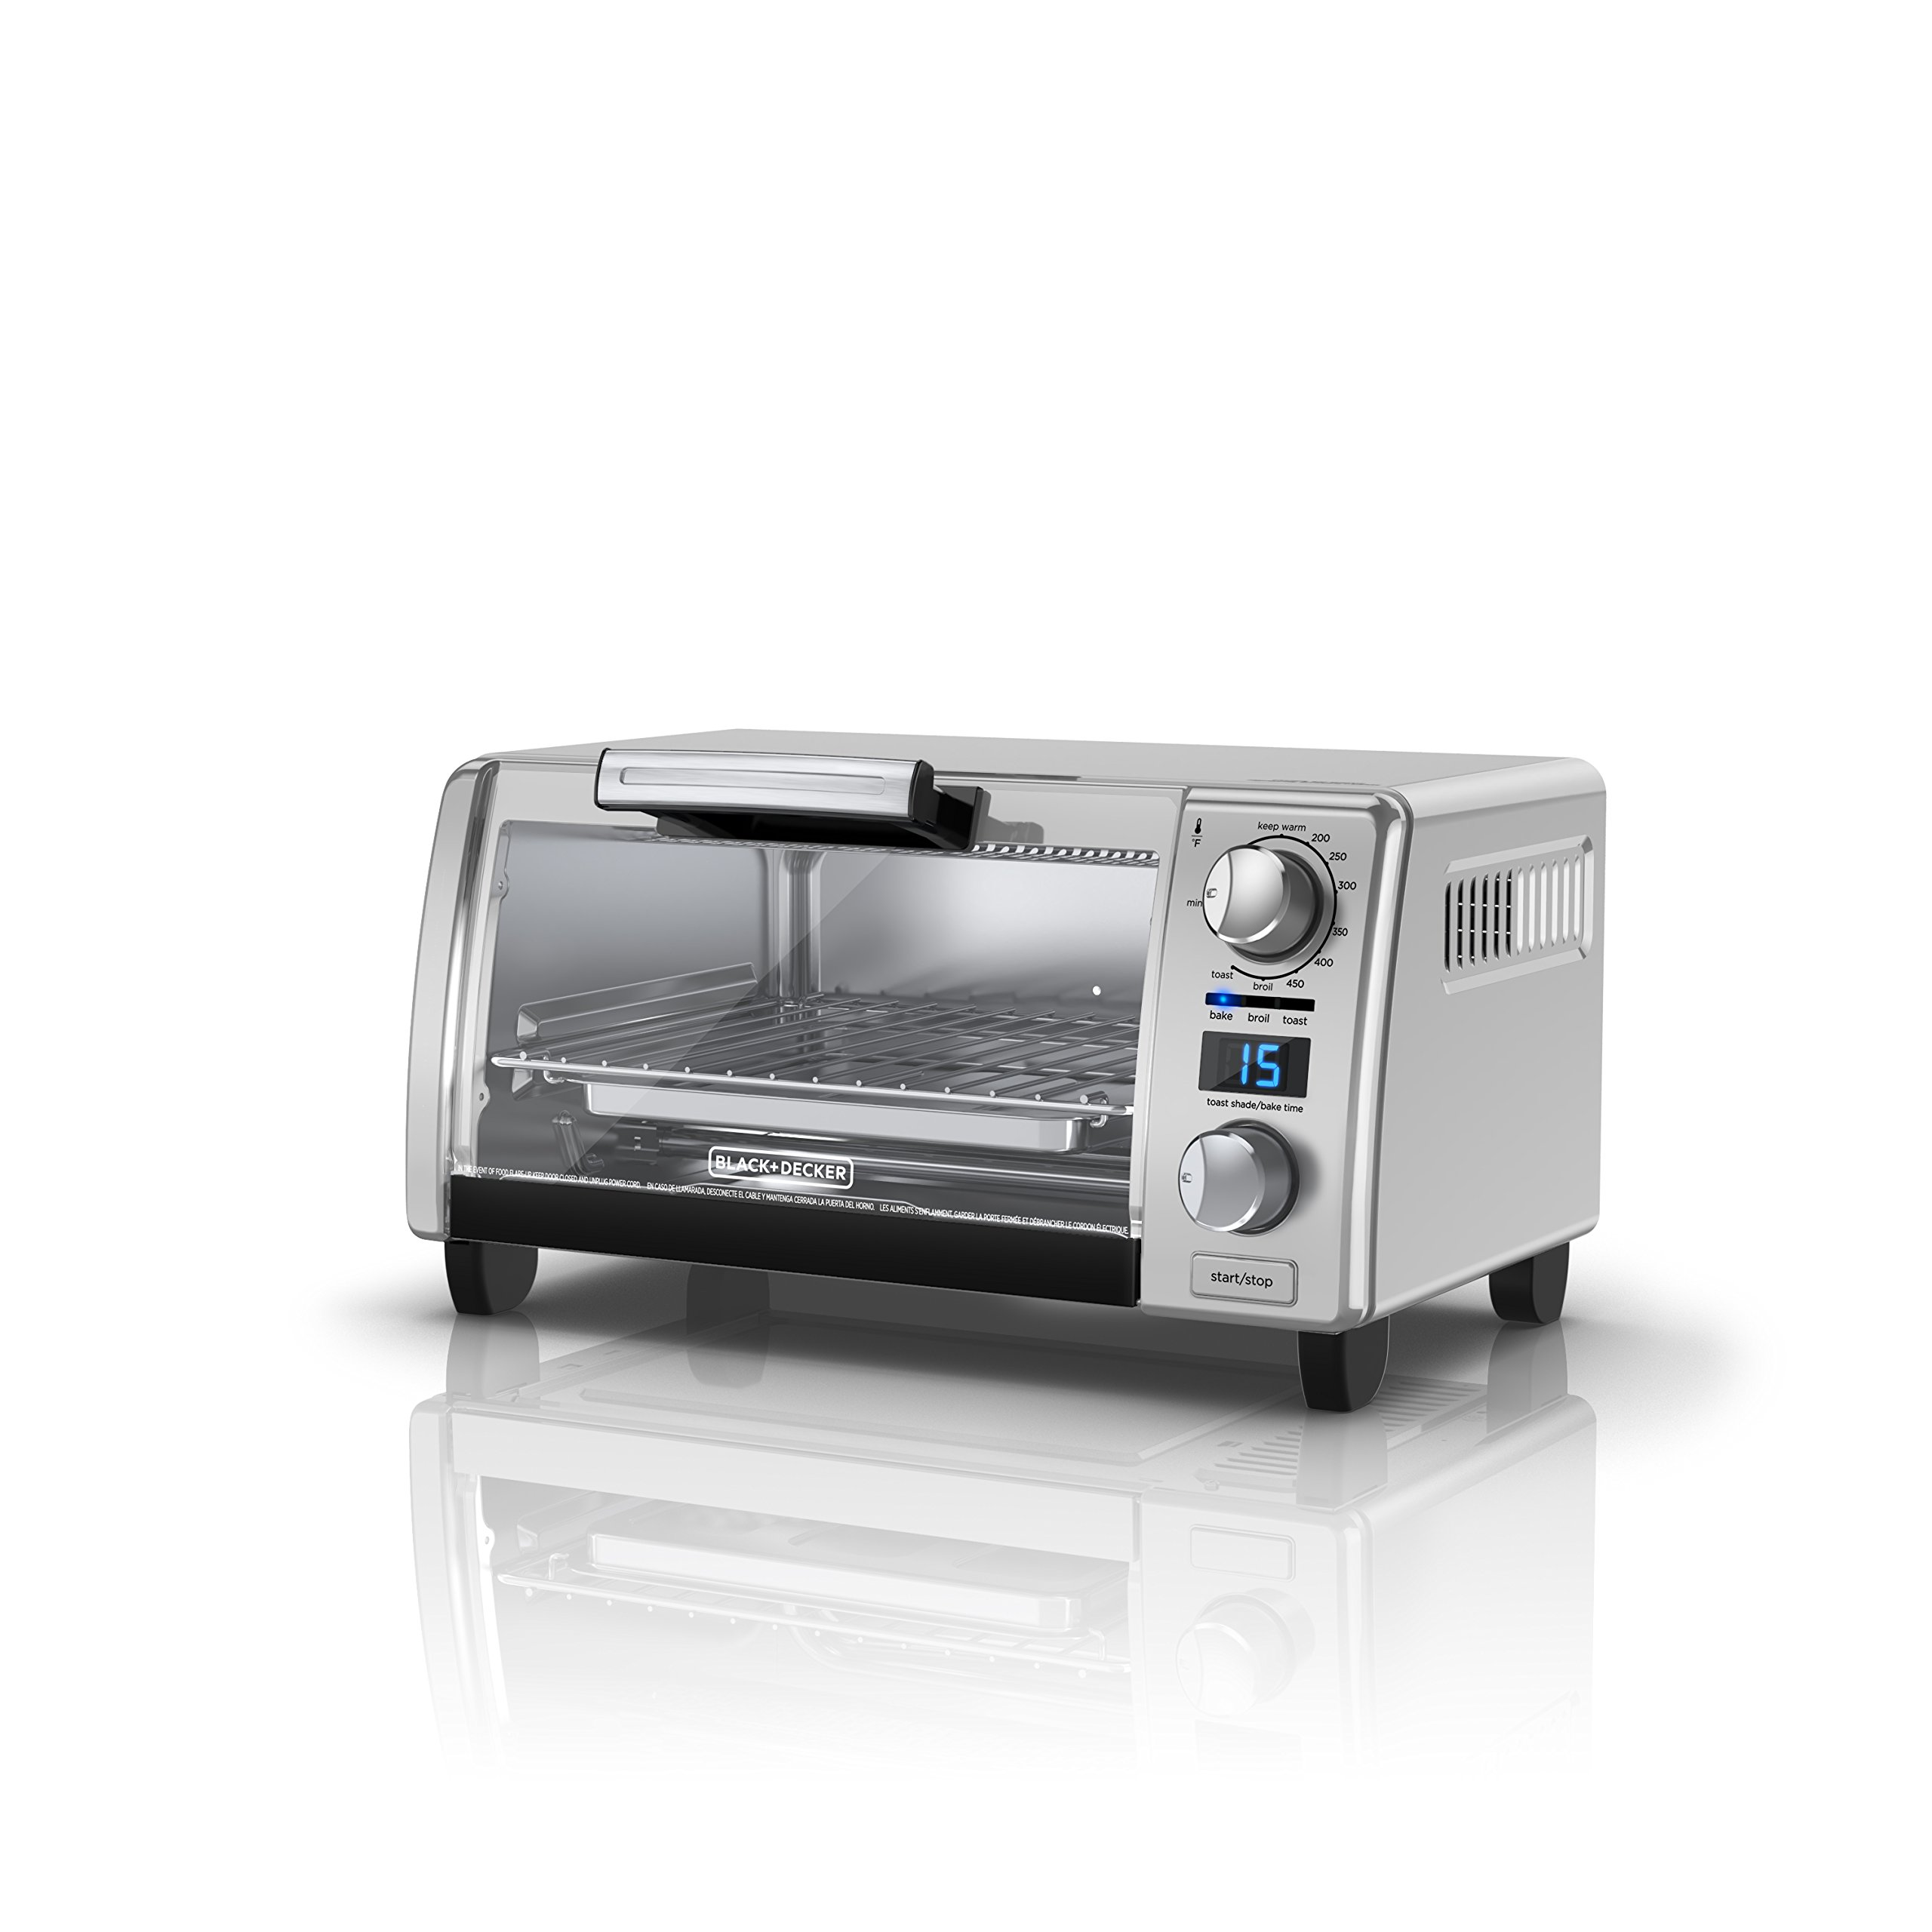 BLACK+DECKER 4-Slice Natural Convection Digital Toaster Oven, Stainless Steel, TOD1770G